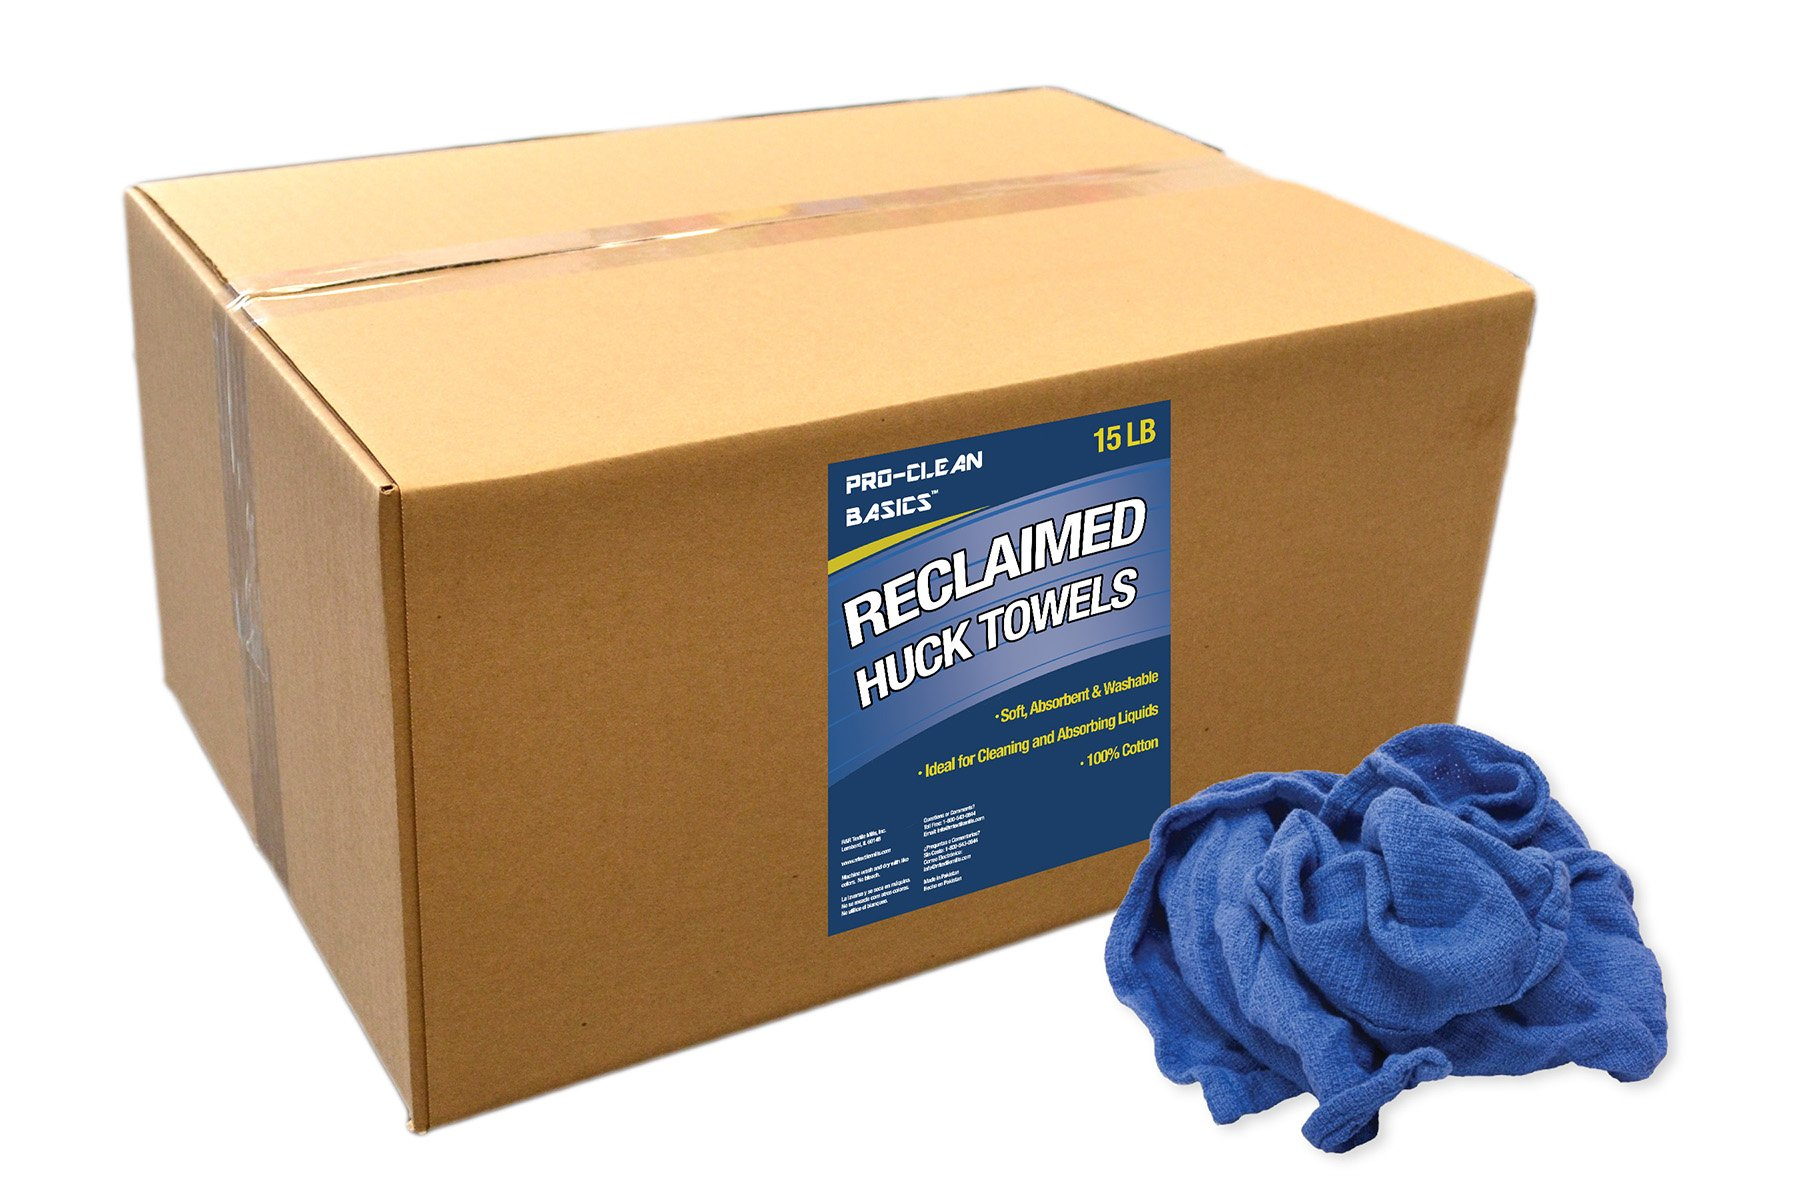 Pro-Clean Basics Reclaimed Huck or Surgical Towels: 50 lb. Box